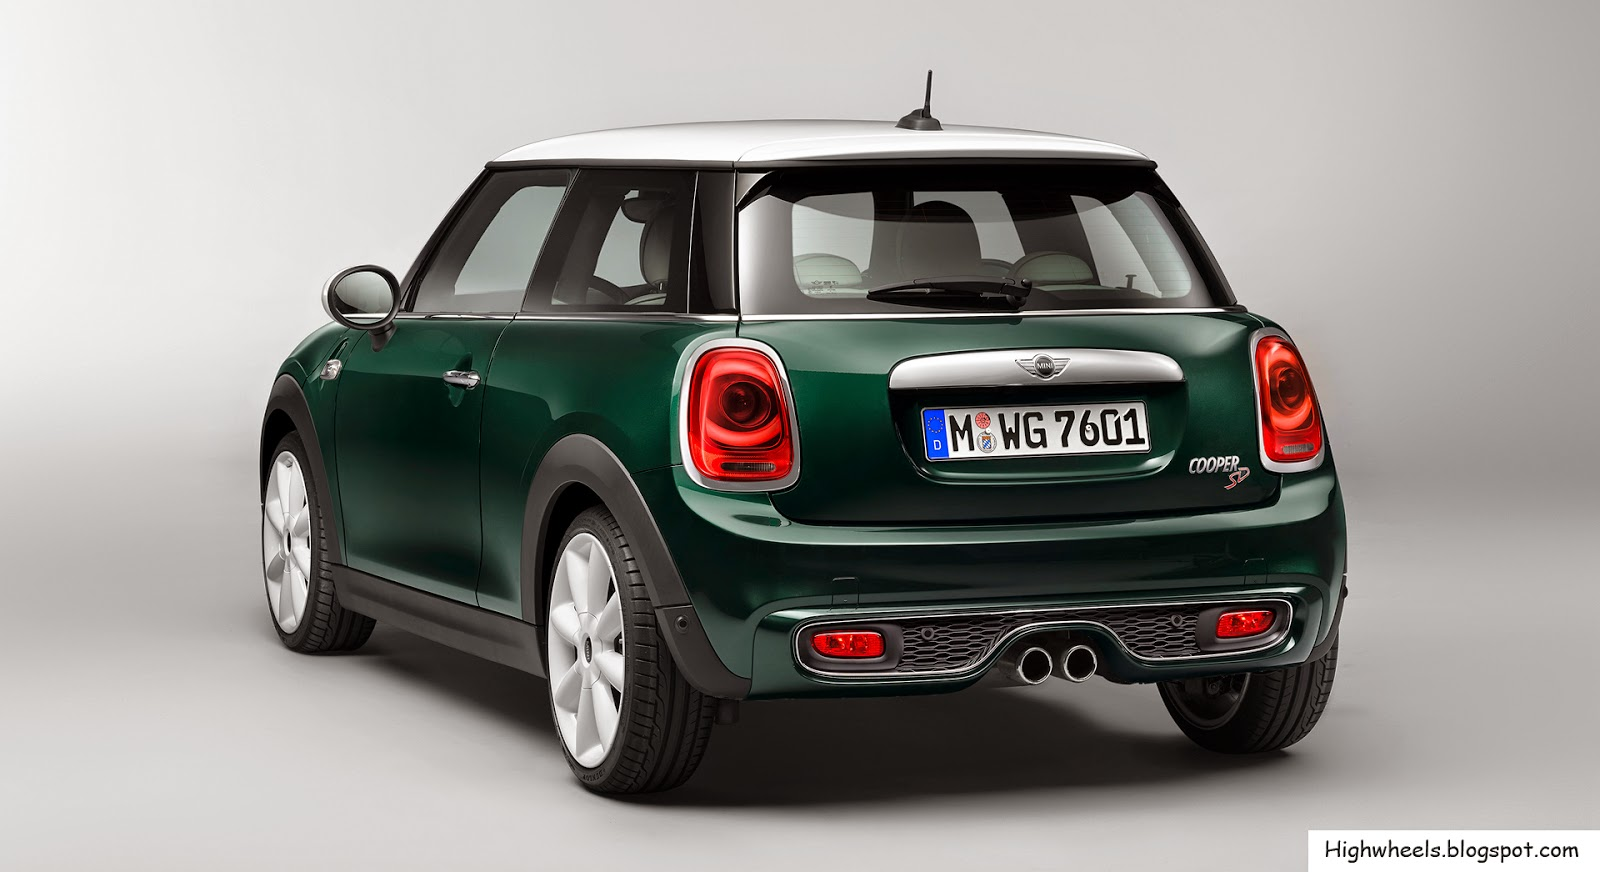 2015 mini cooper sd high wheels. Black Bedroom Furniture Sets. Home Design Ideas